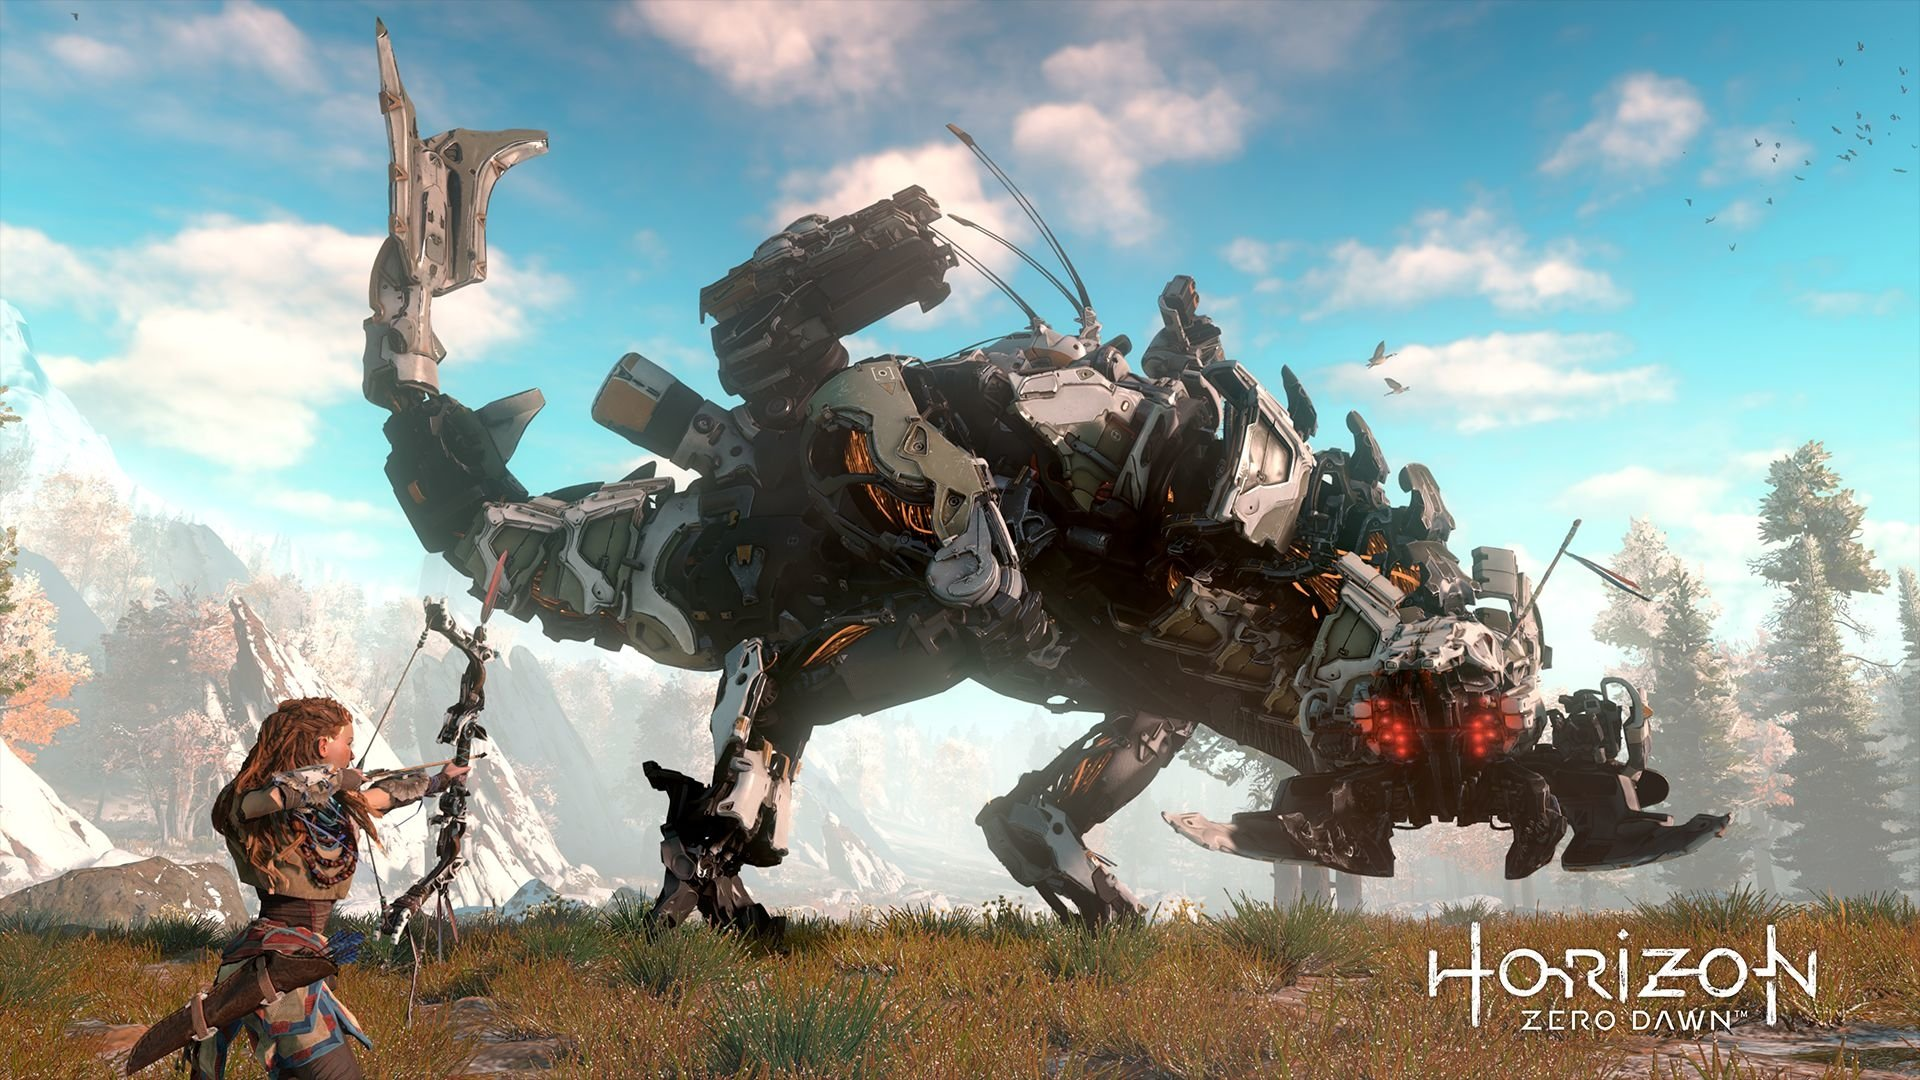 161 Horizon Zero Dawn HD Wallpapers   Background Images   Wallpaper     Aloy Horizon Zero Dawn Video Game      HD Wallpaper   Background Image  ID 601152